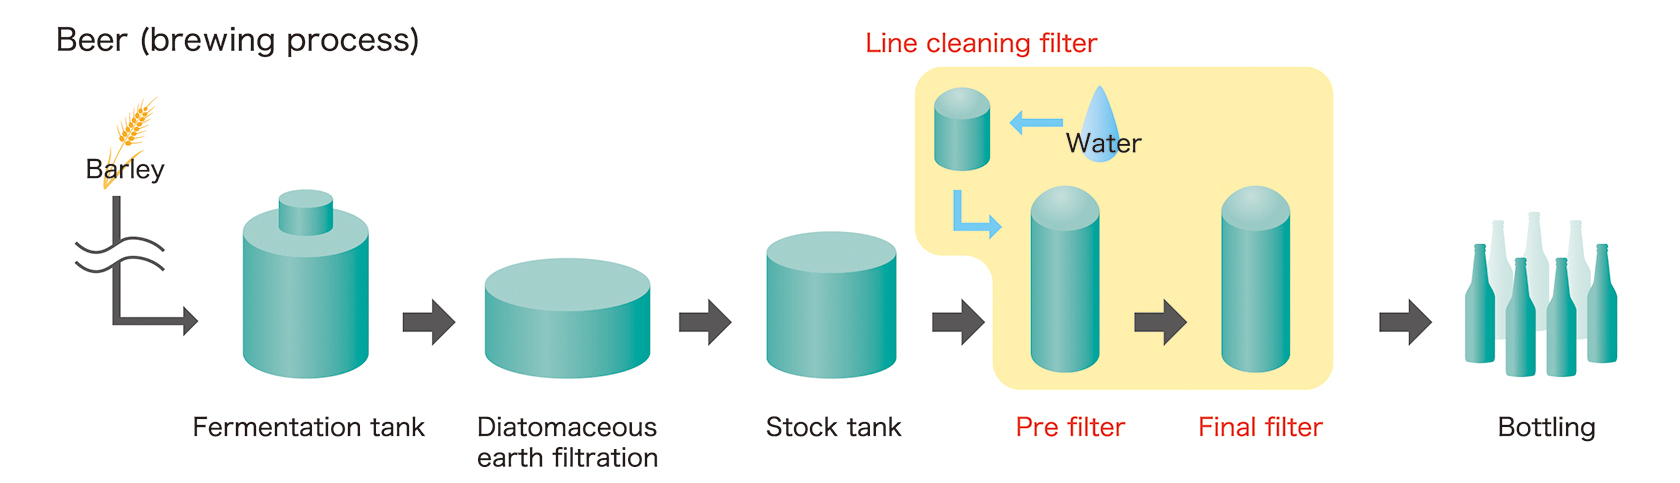 [image] Steps of beer brewing process, using PPE (pre-filter) Cartridges and PSK Cartridges (Final filter)